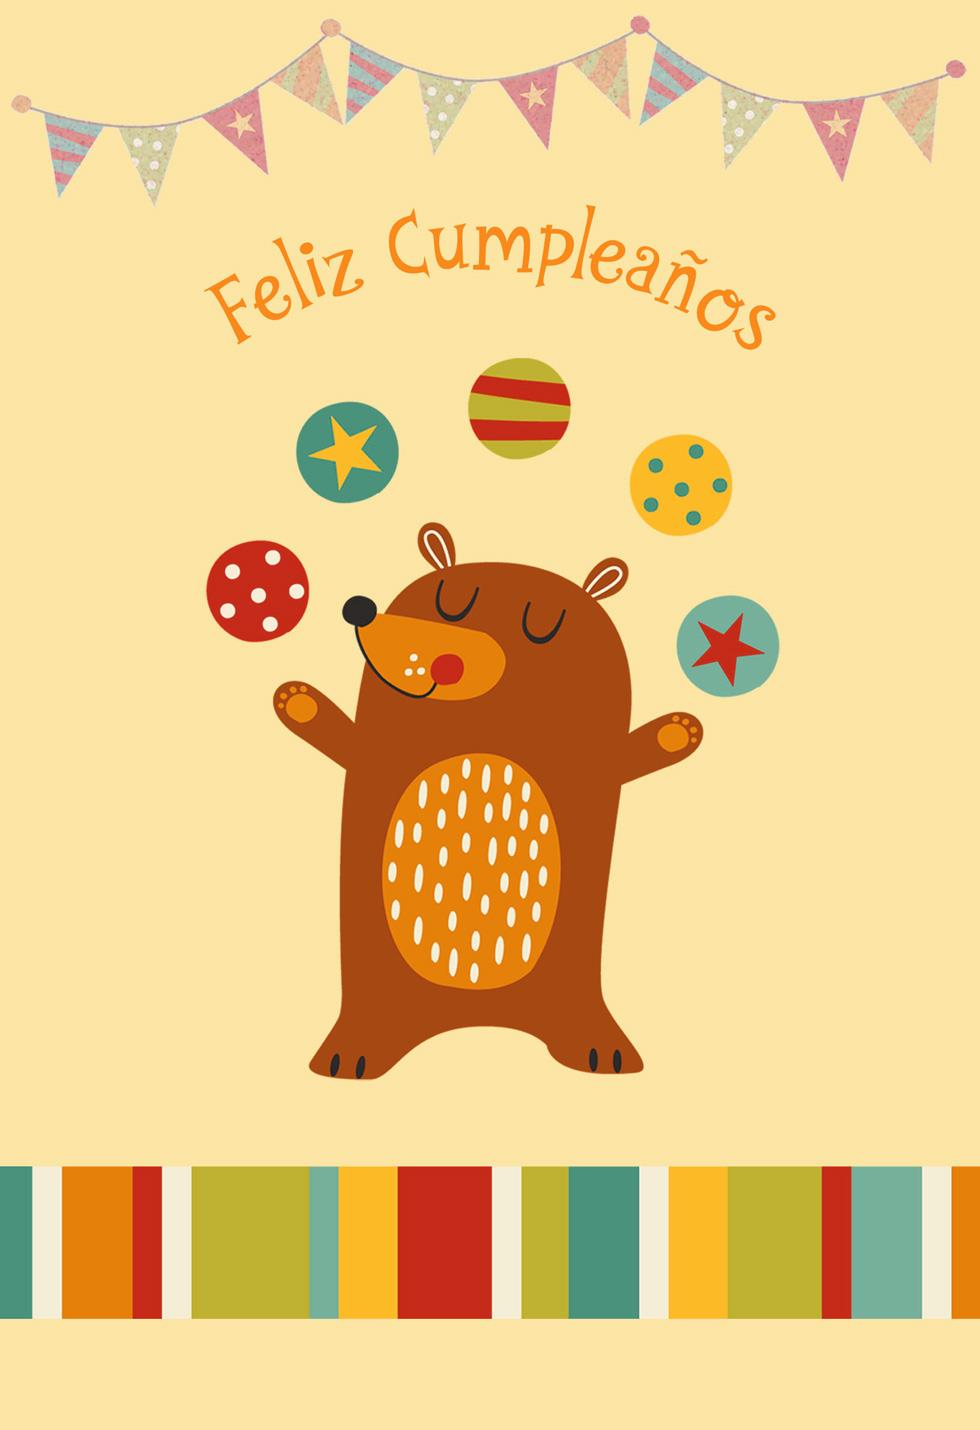 Juggling Bear Spanish Language Birthday Card For Child